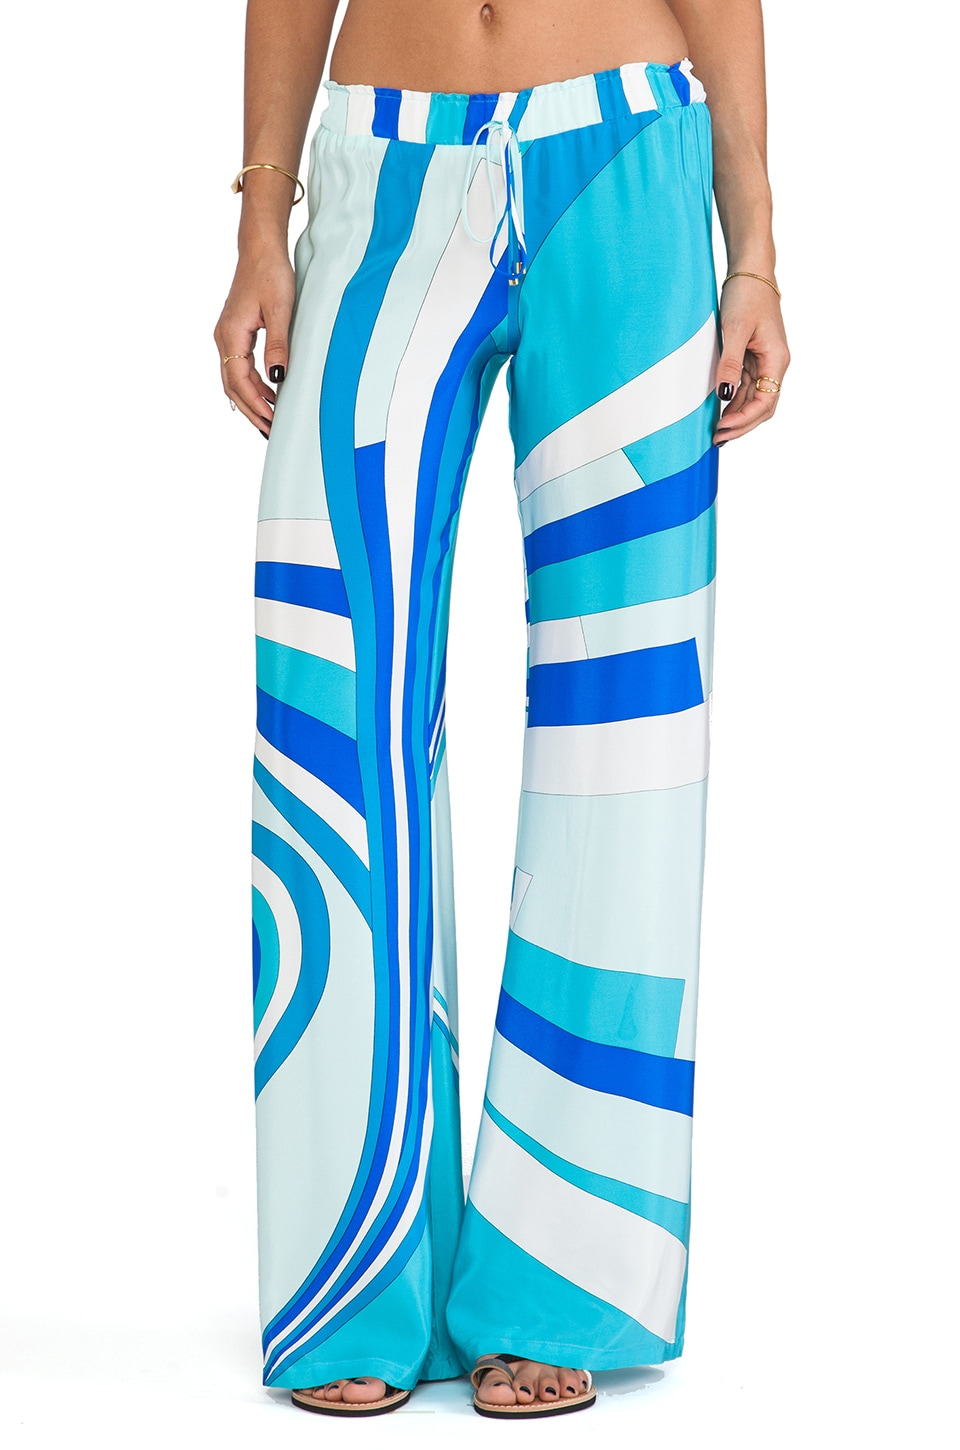 Karina Grimaldi Maui Wide Leg Pants in Blue Aruba